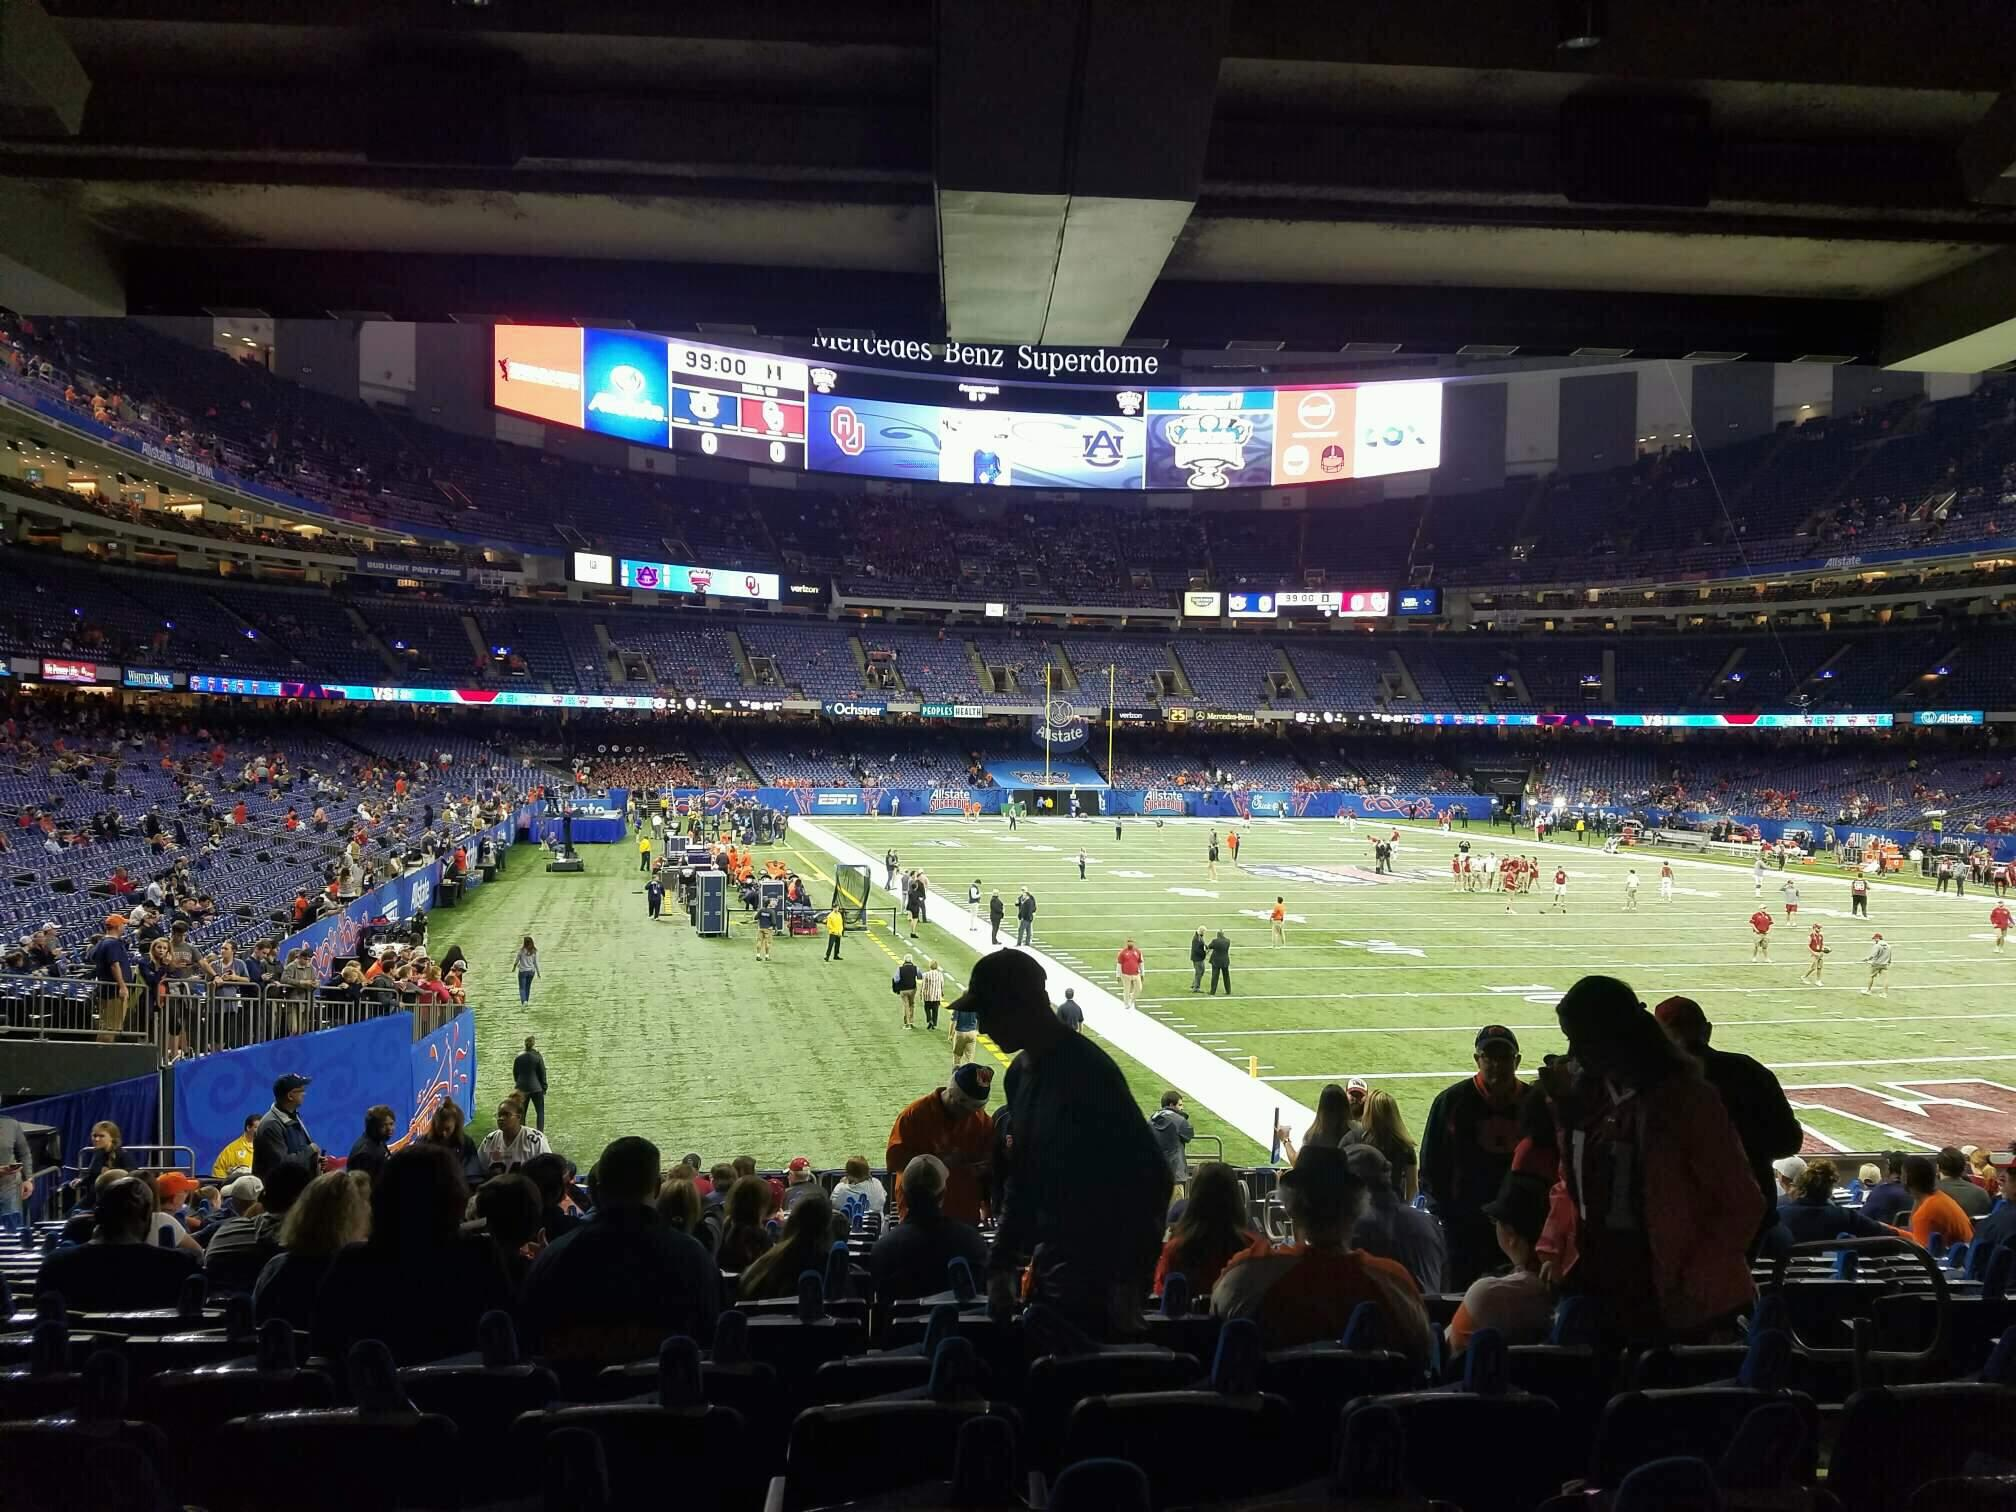 Mercedes-Benz Superdome Section 104 Row 20 Seat 14